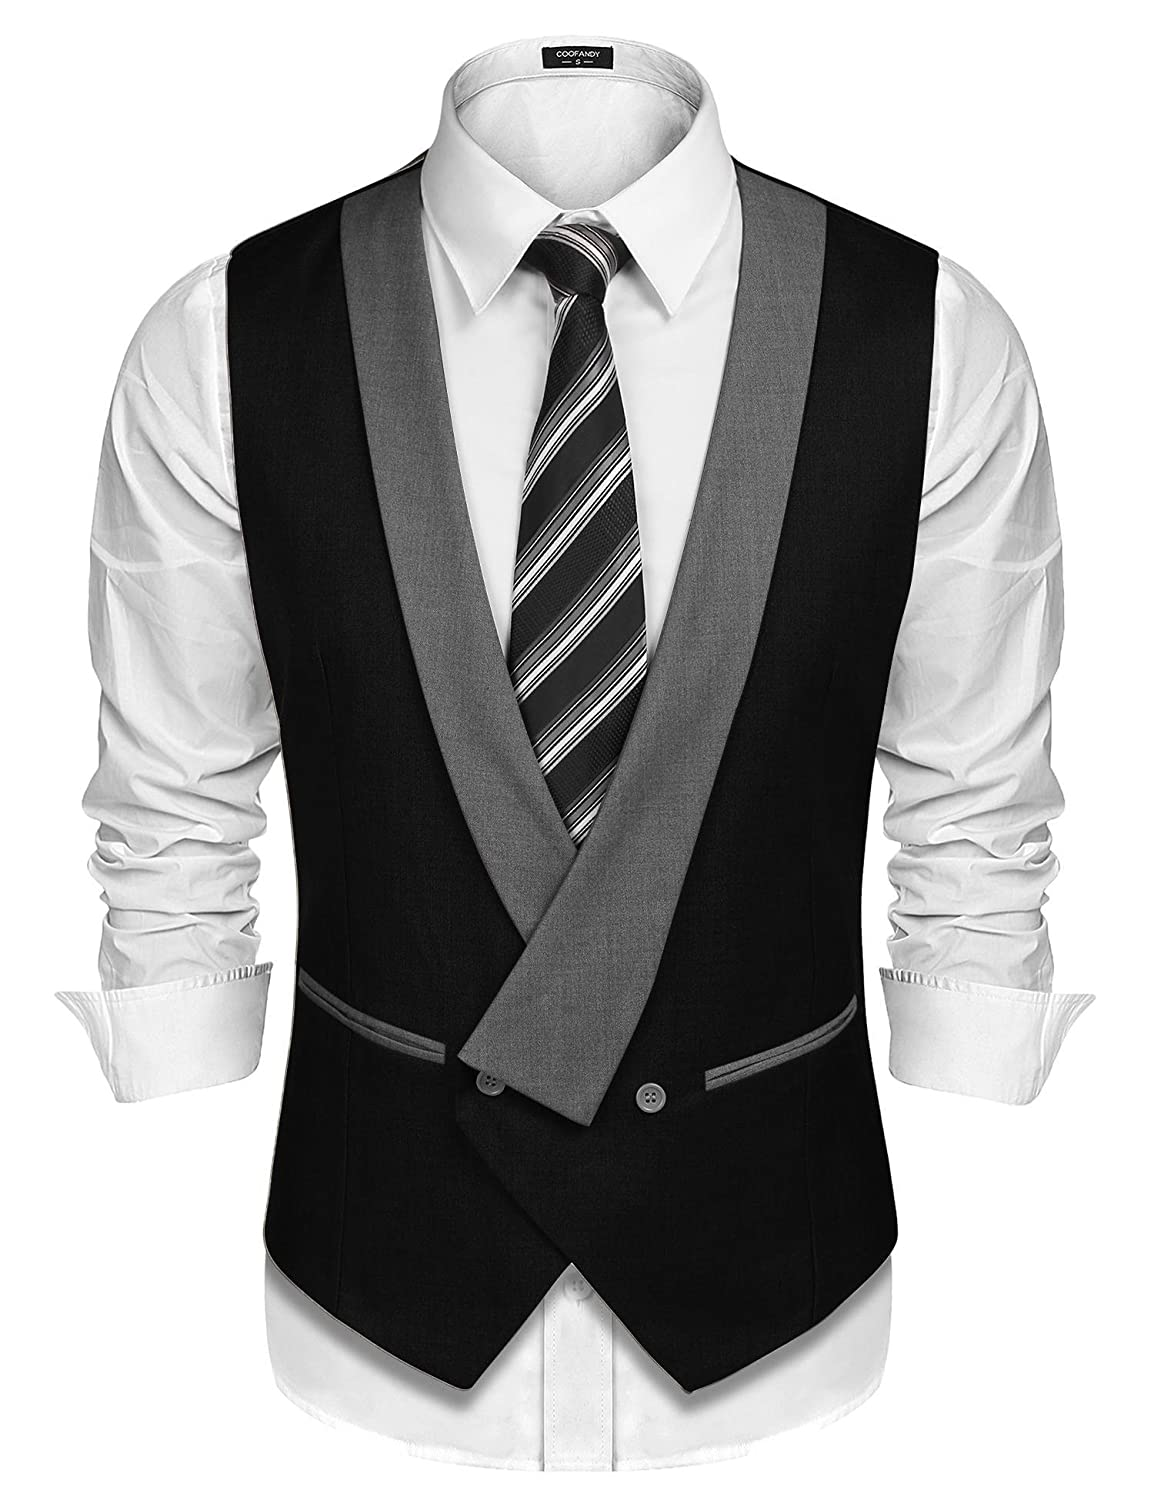 New Vintage Tuxedos, Tailcoats, Morning Suits, Dinner Jackets COOFANDY Mens Pinstripe Suit Vest Slim Fit Casual Business Waistcoat Jacket Vests $16.99 AT vintagedancer.com